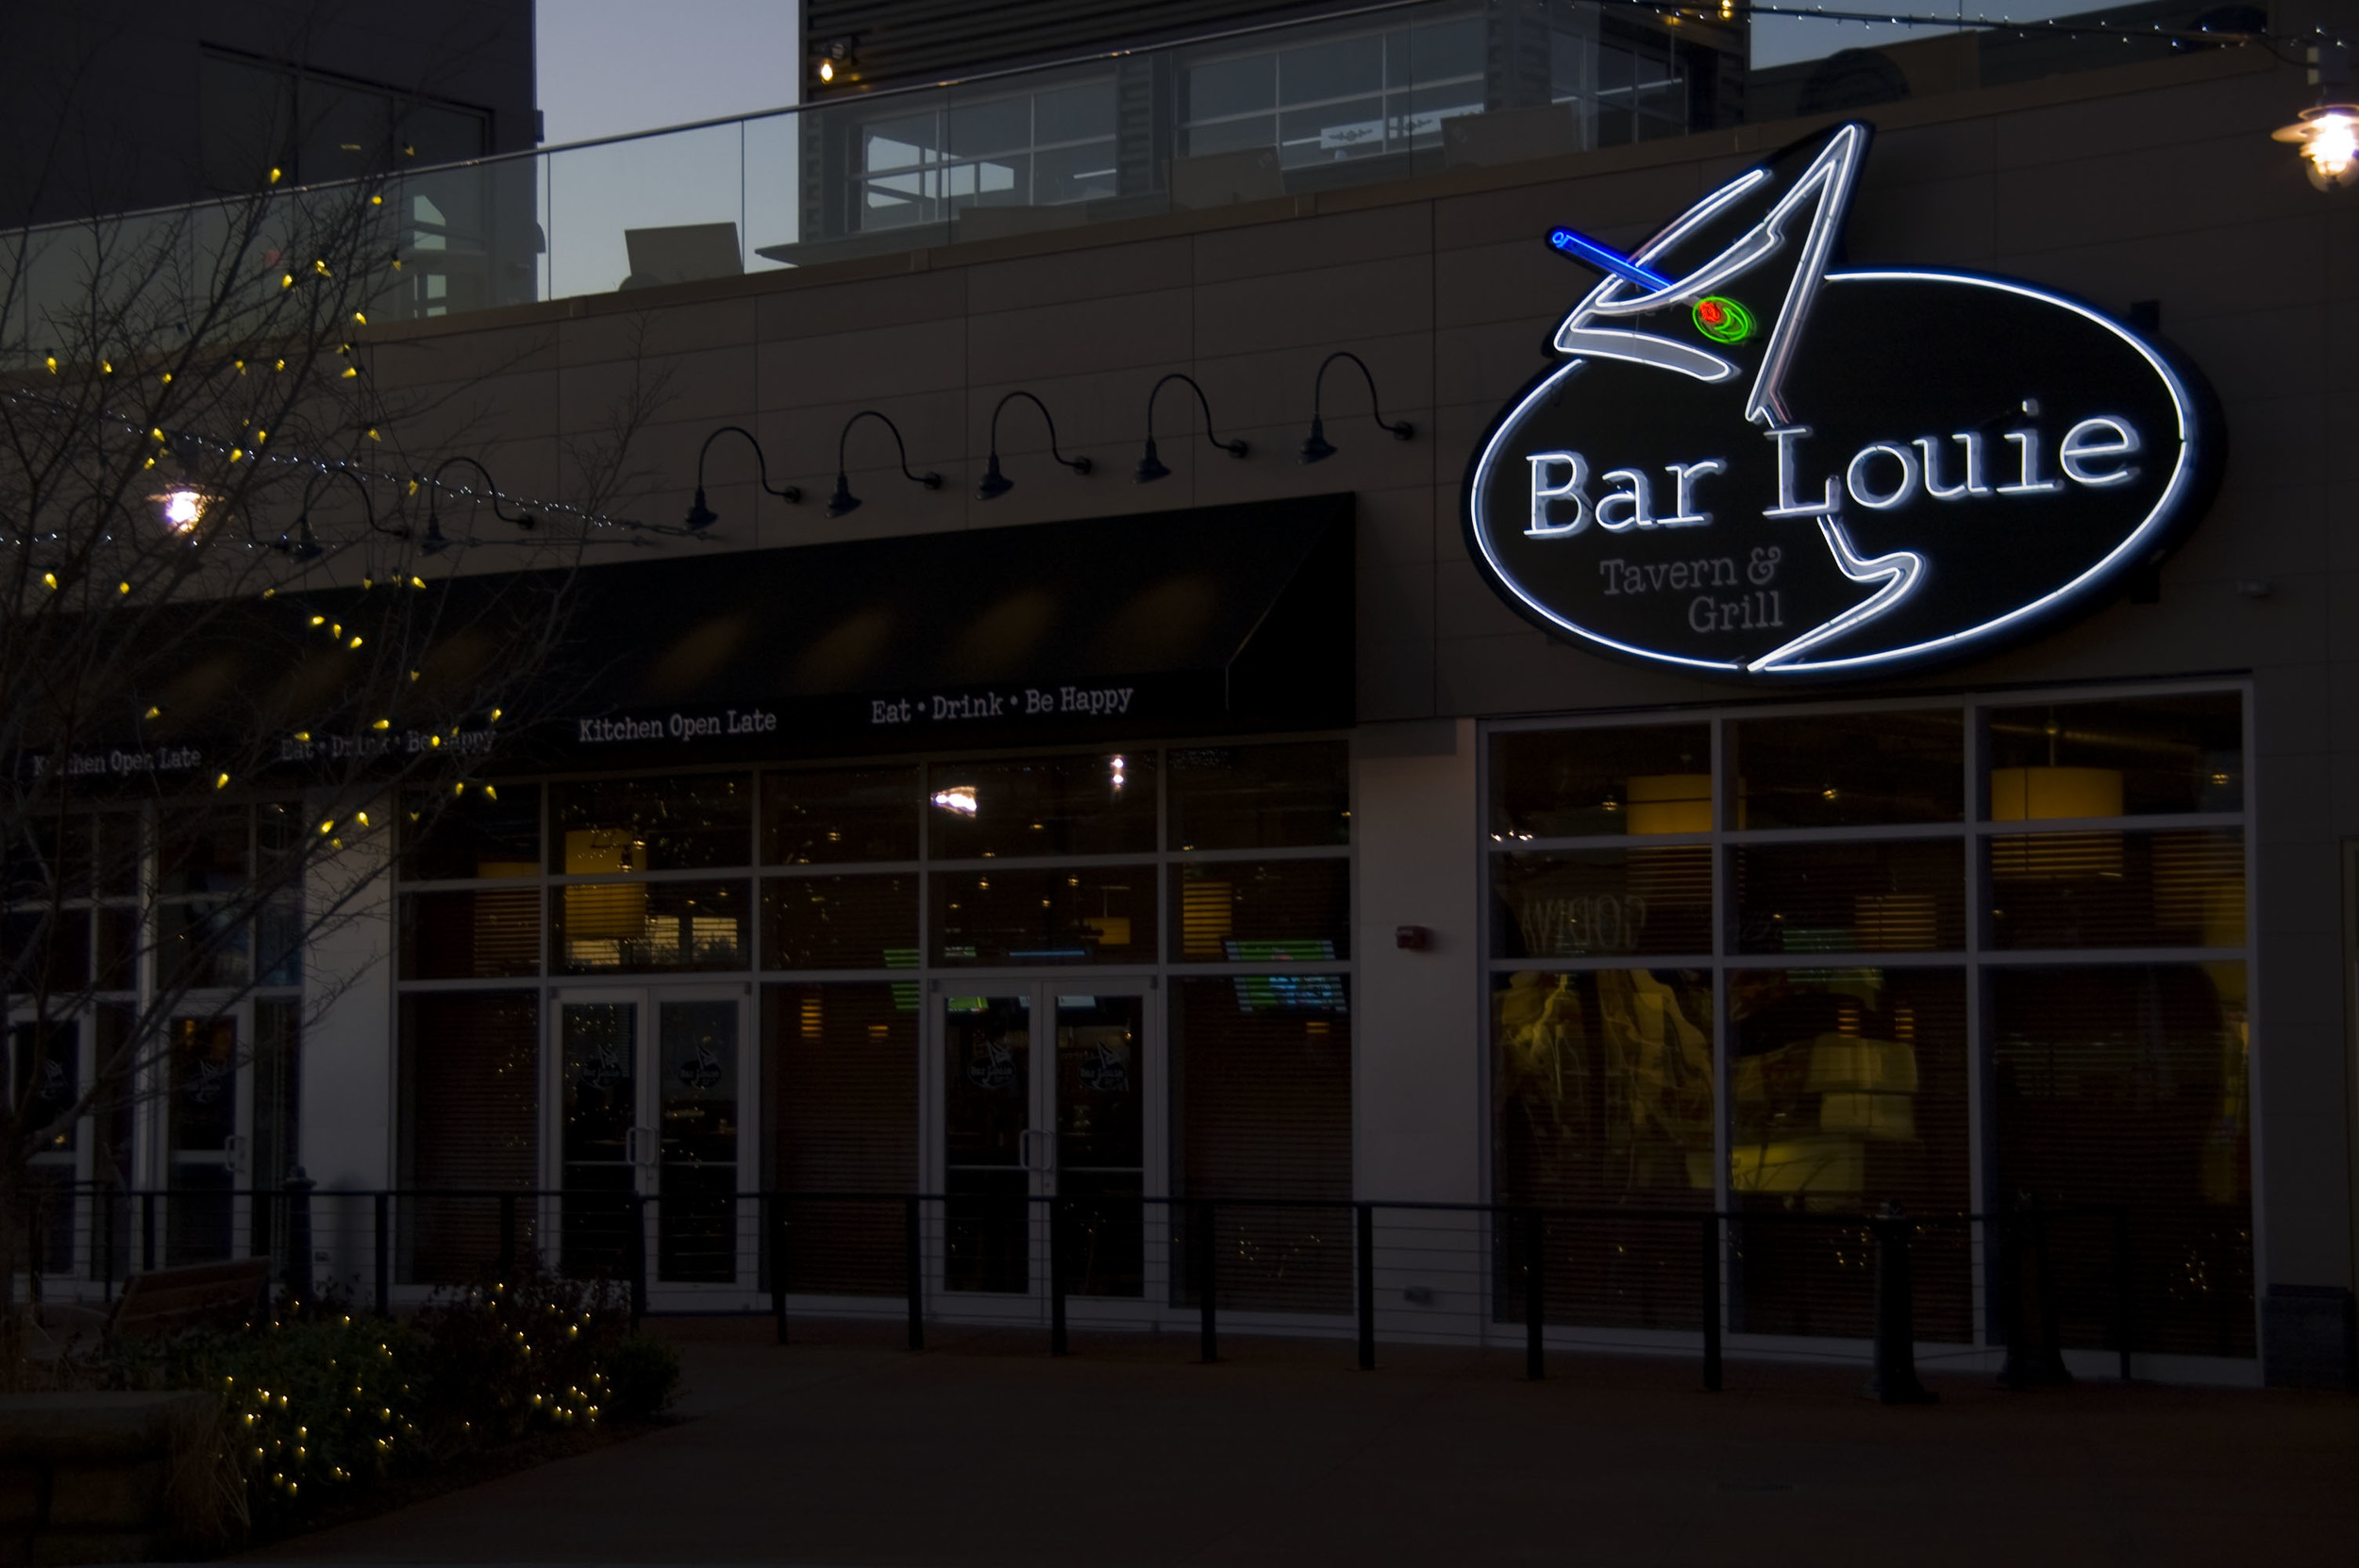 BarLouie_MainID_and_Awning_Night.jpg